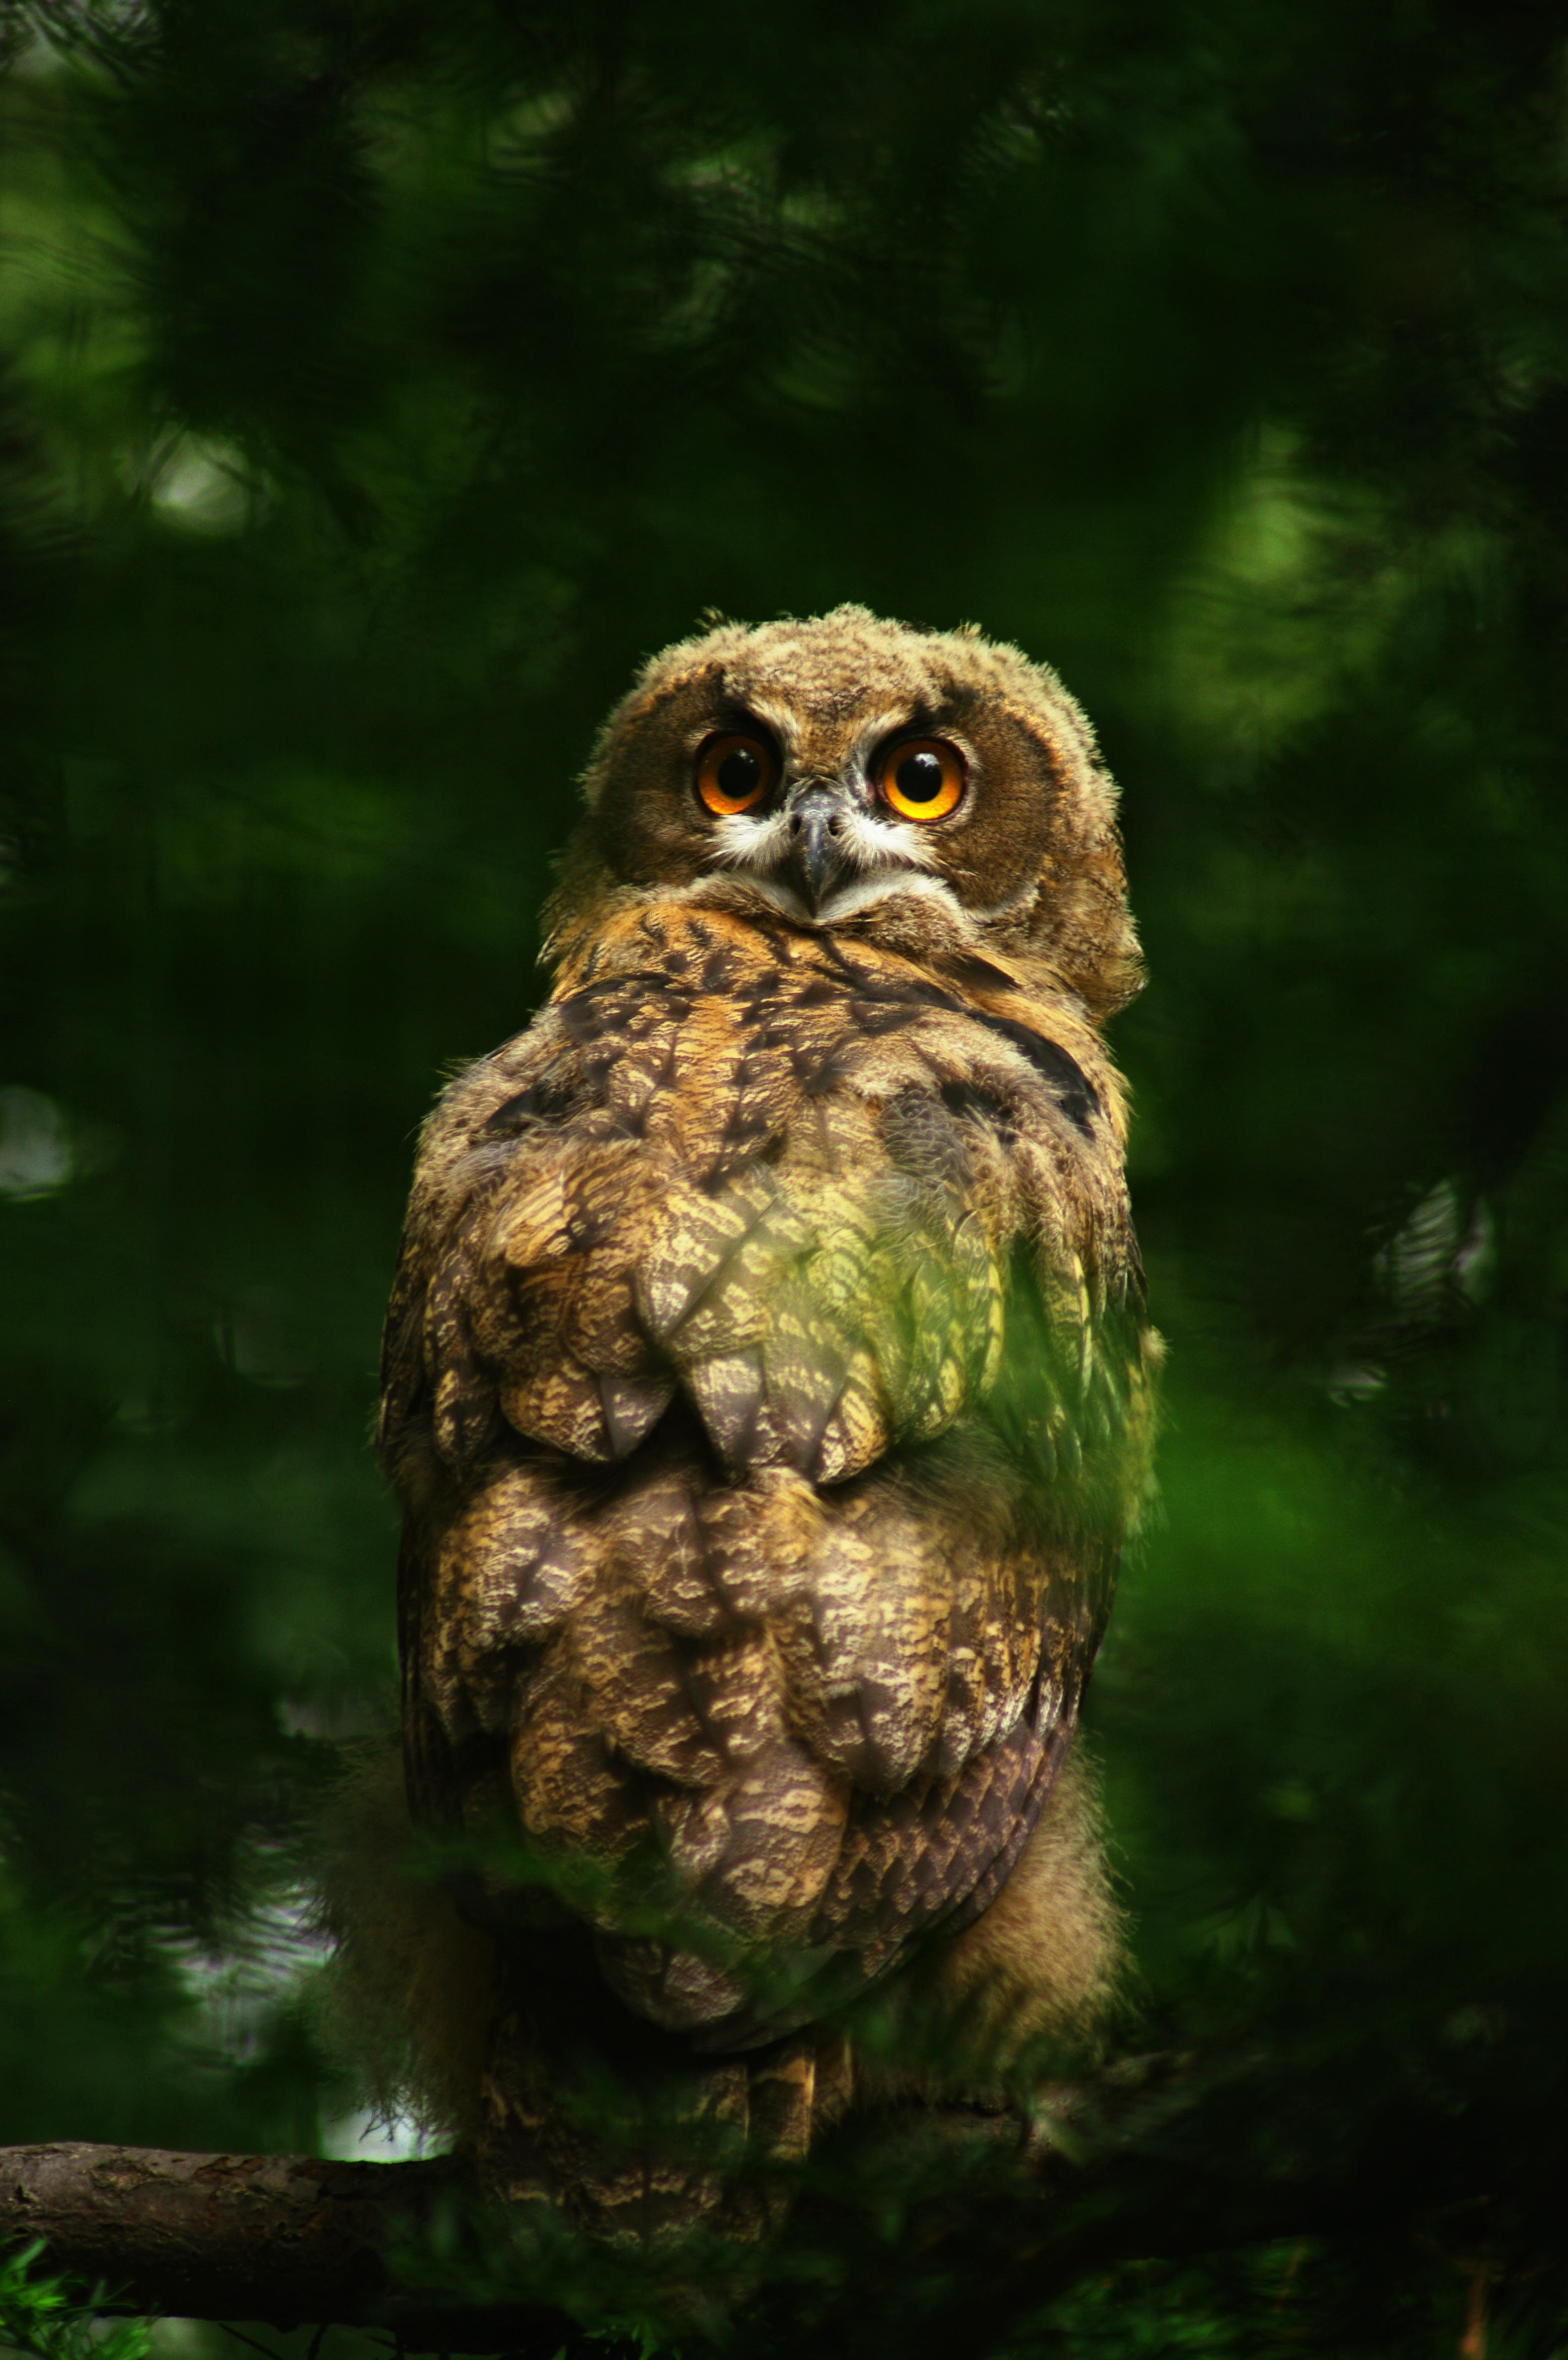 129183 download wallpaper Animals, Owl, Predator, Bird, Sight, Opinion, Feather screensavers and pictures for free